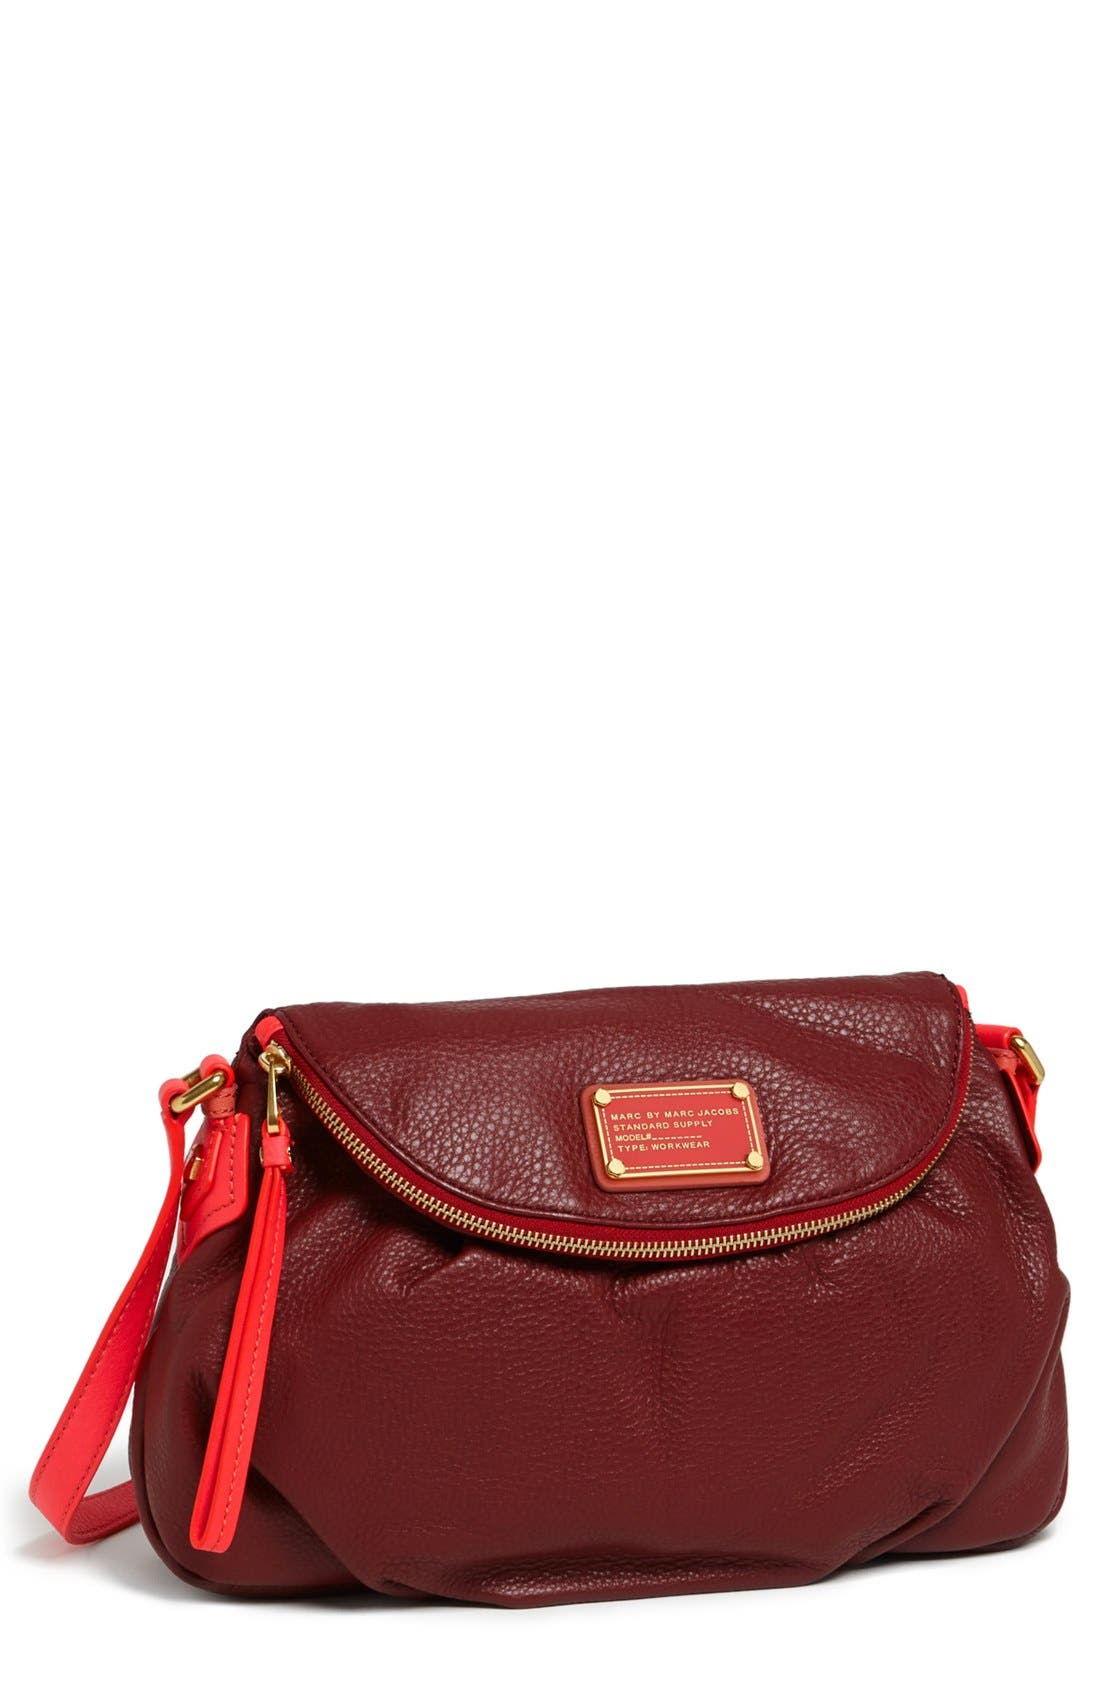 Alternate Image 1 Selected - MARC BY MARC JACOBS 'Classic Q - Natasha' Leather Crossbody Bag